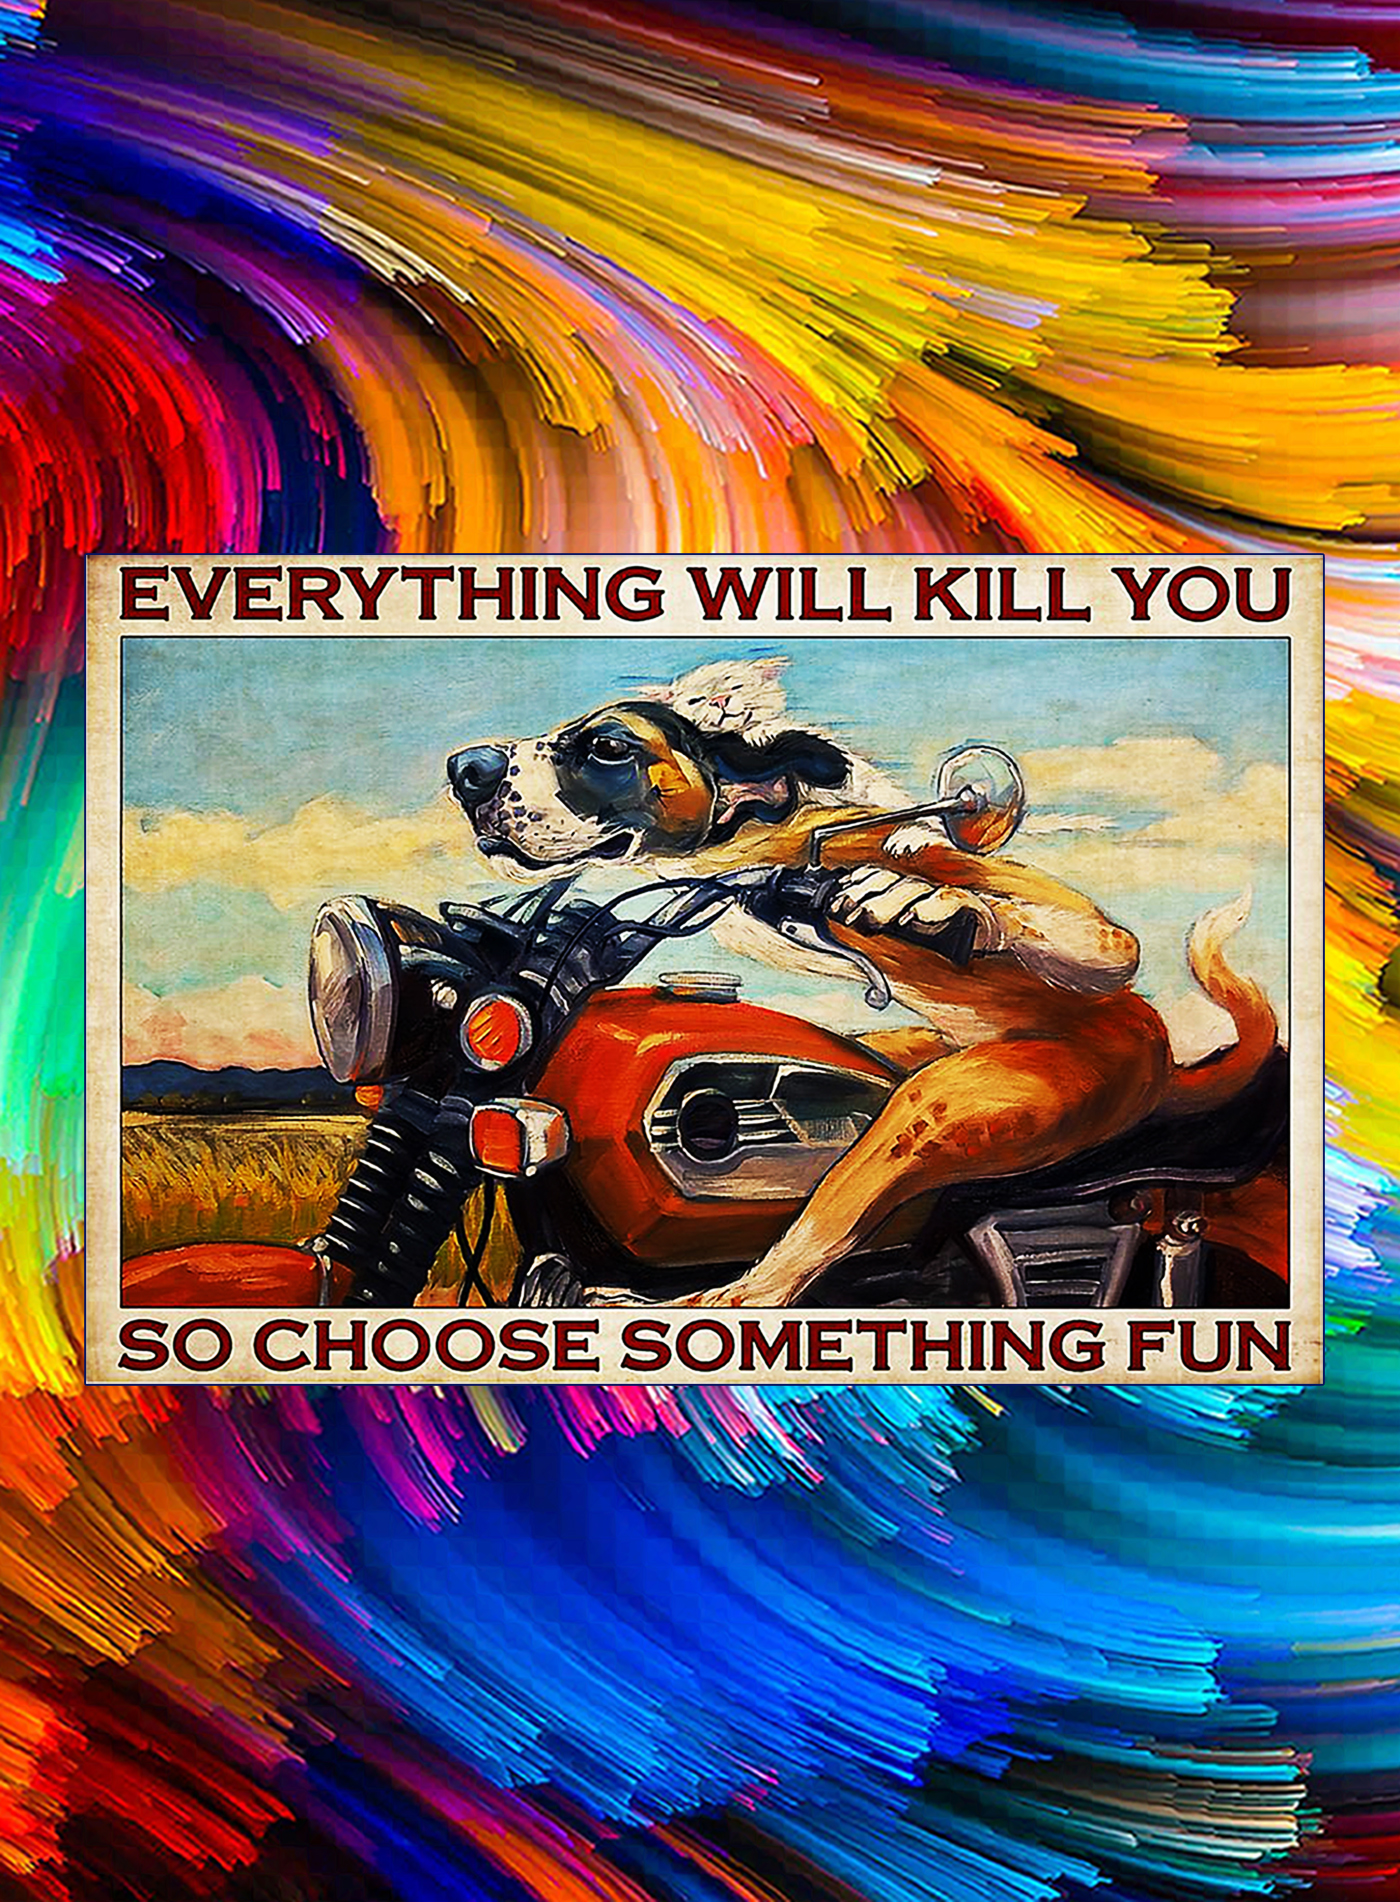 Motorcycle dog and cat everything will kill you so choose something fun poster - A1